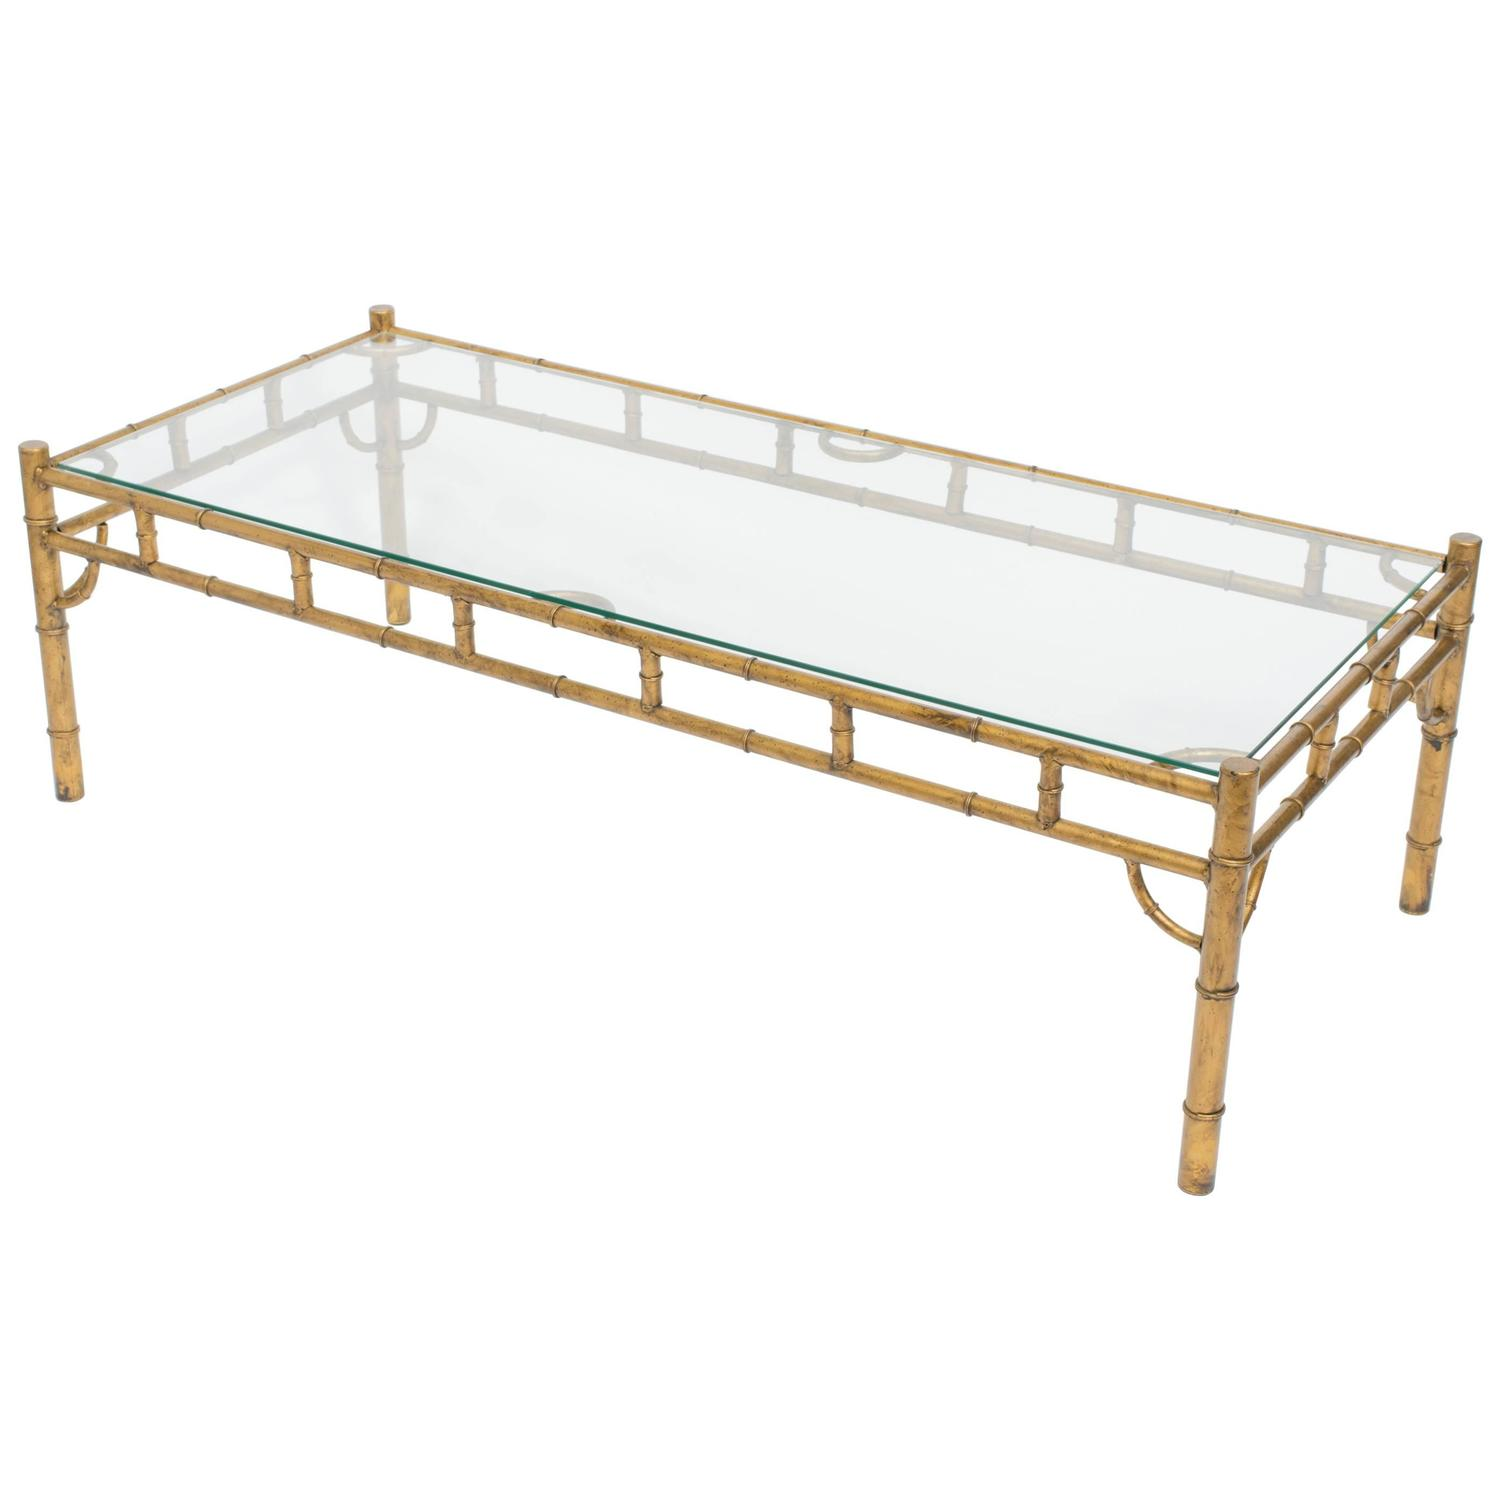 Brass Faux Bamboo Coffee Table: Large Gilt Metal Faux Bamboo Coffee Table For Sale At 1stdibs